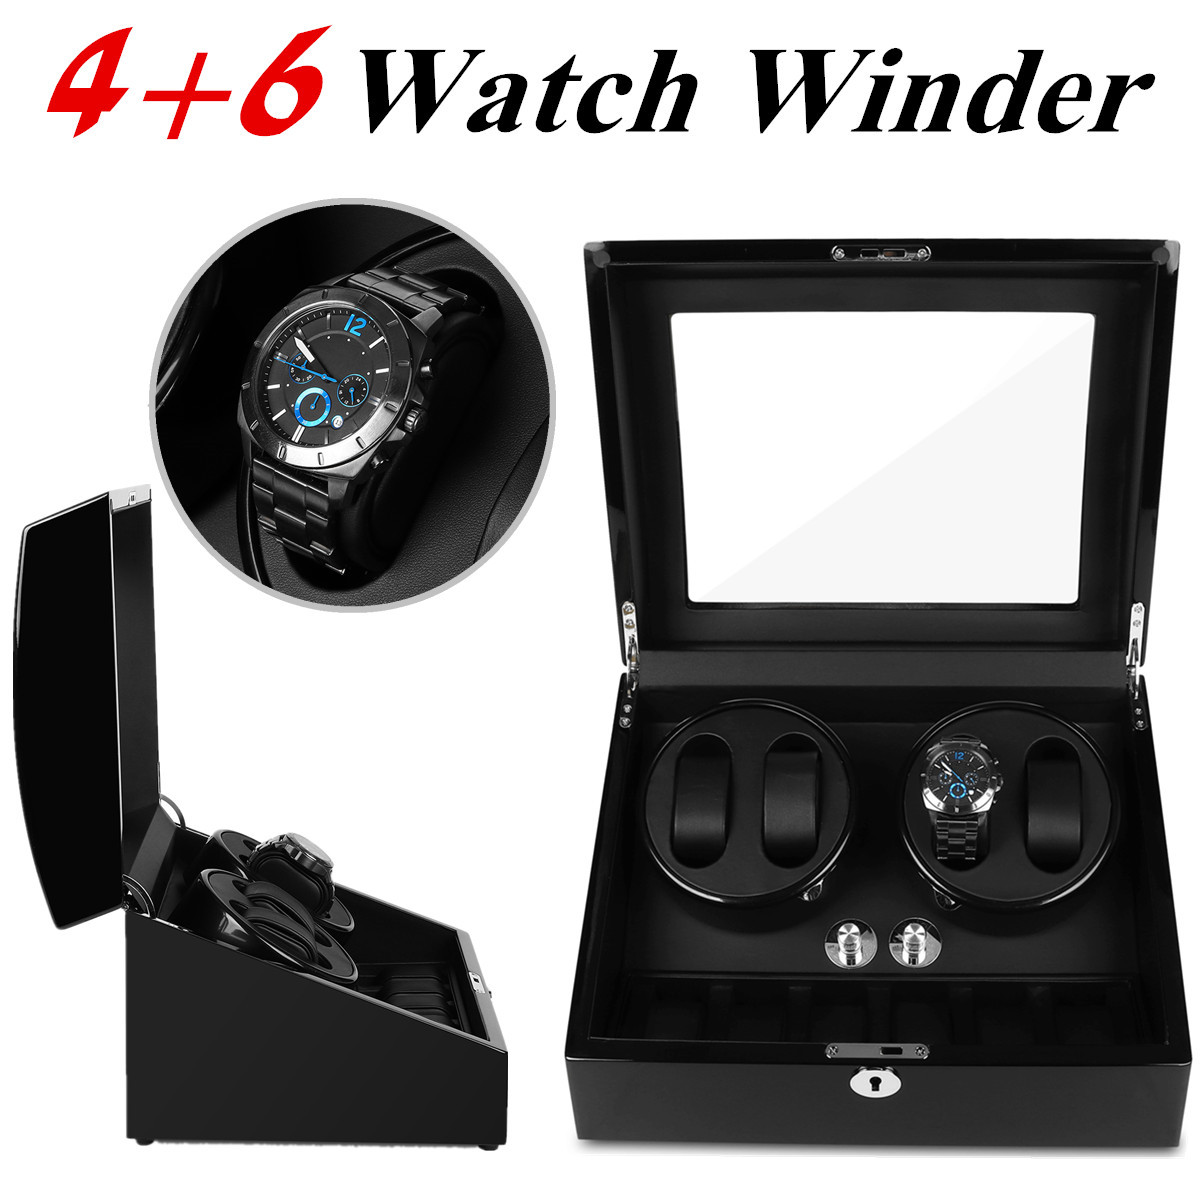 PU Leather Automatic 4+6 Watch Winder Rotator Storage Case Display Box Organizer Silent Operation For Self winding Watches Black